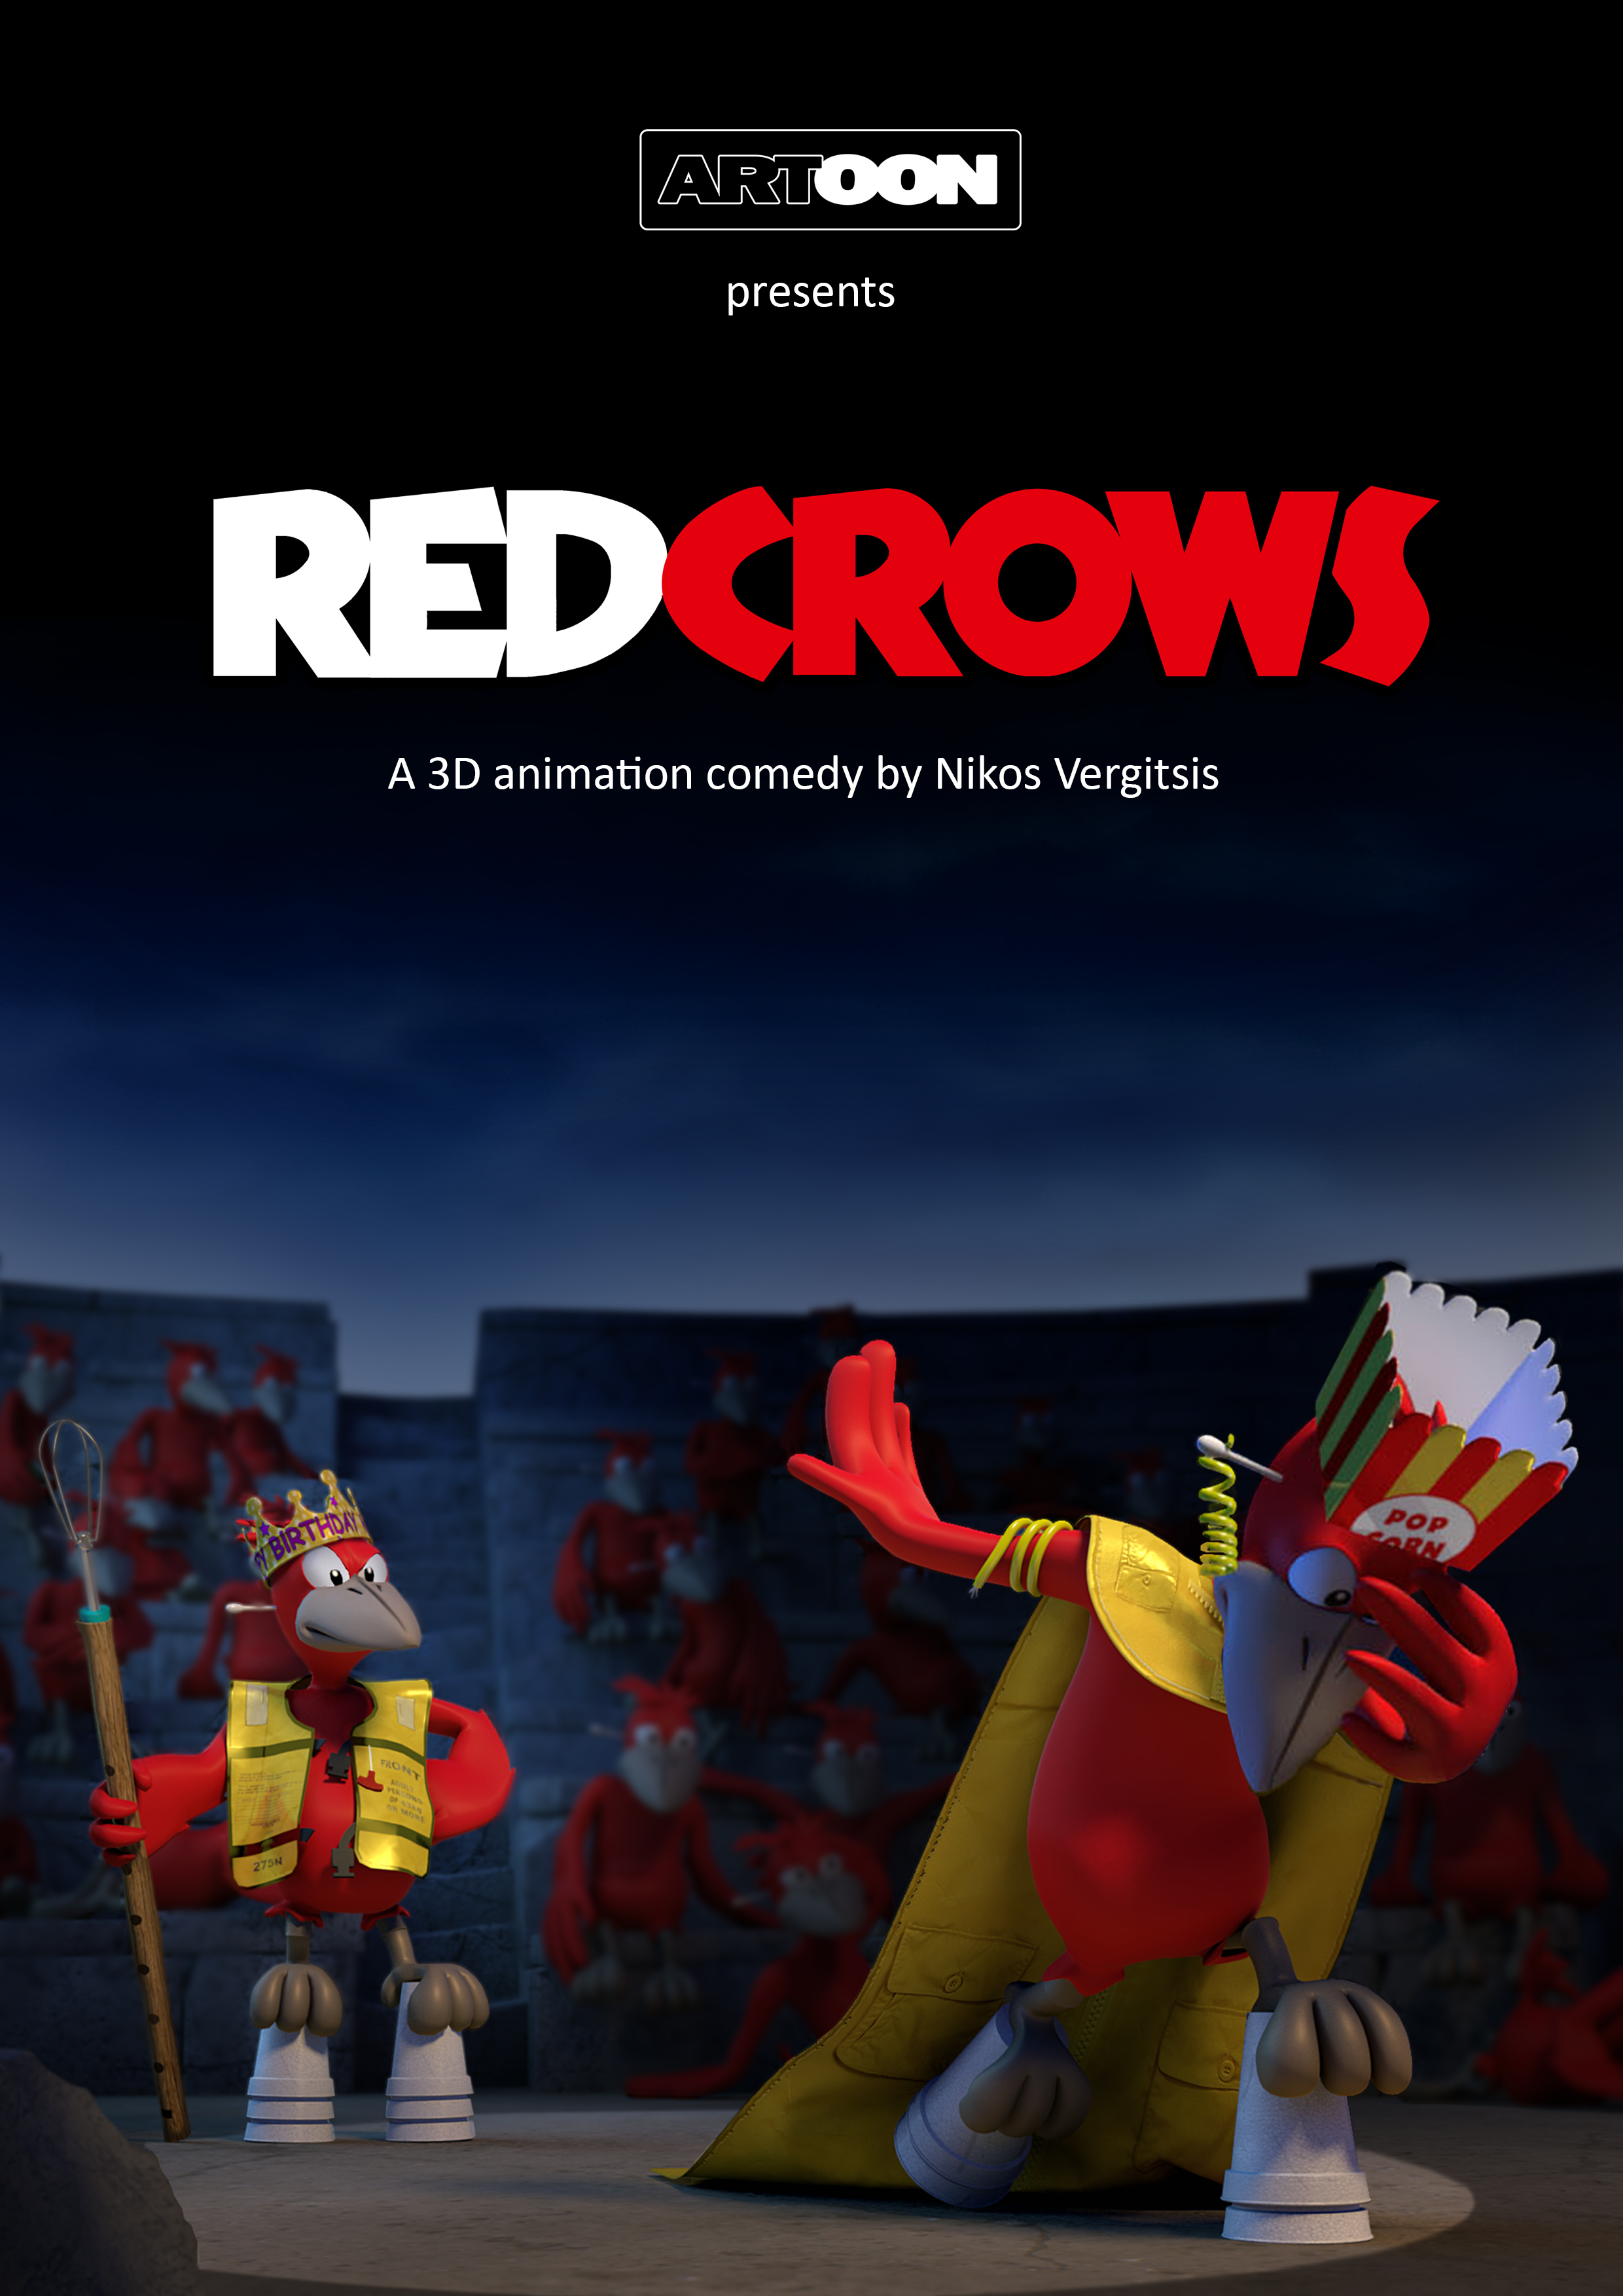 red crows poster 9-11-2016